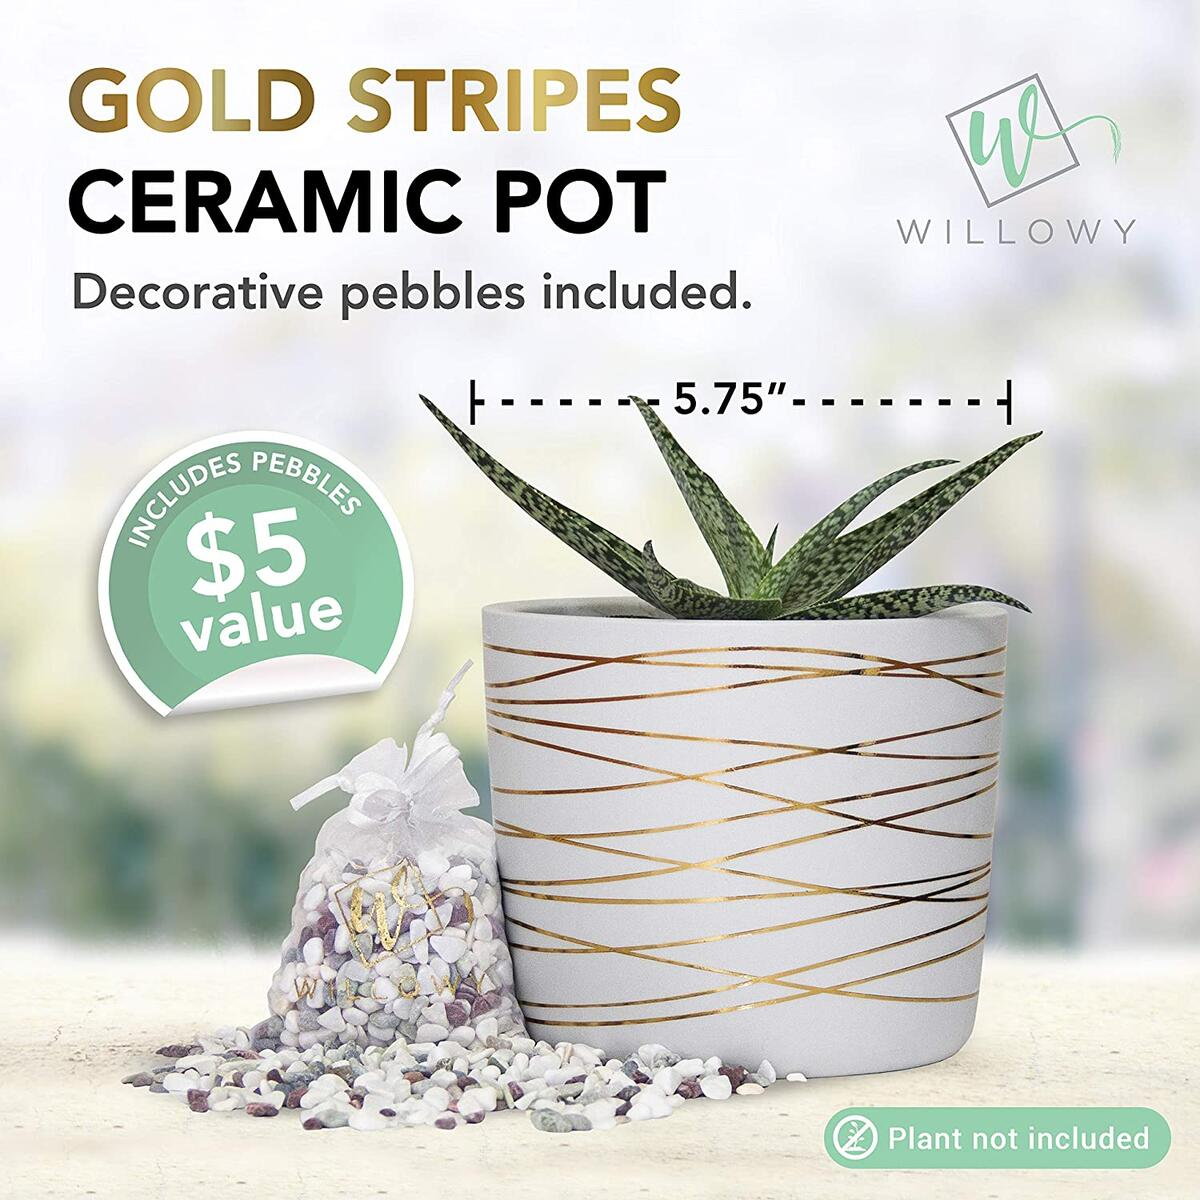 6 Inch Ceramic Plant Pot - Small White Planter with Gold Stripes - Drainage Plug and Decorative Pebbles Included